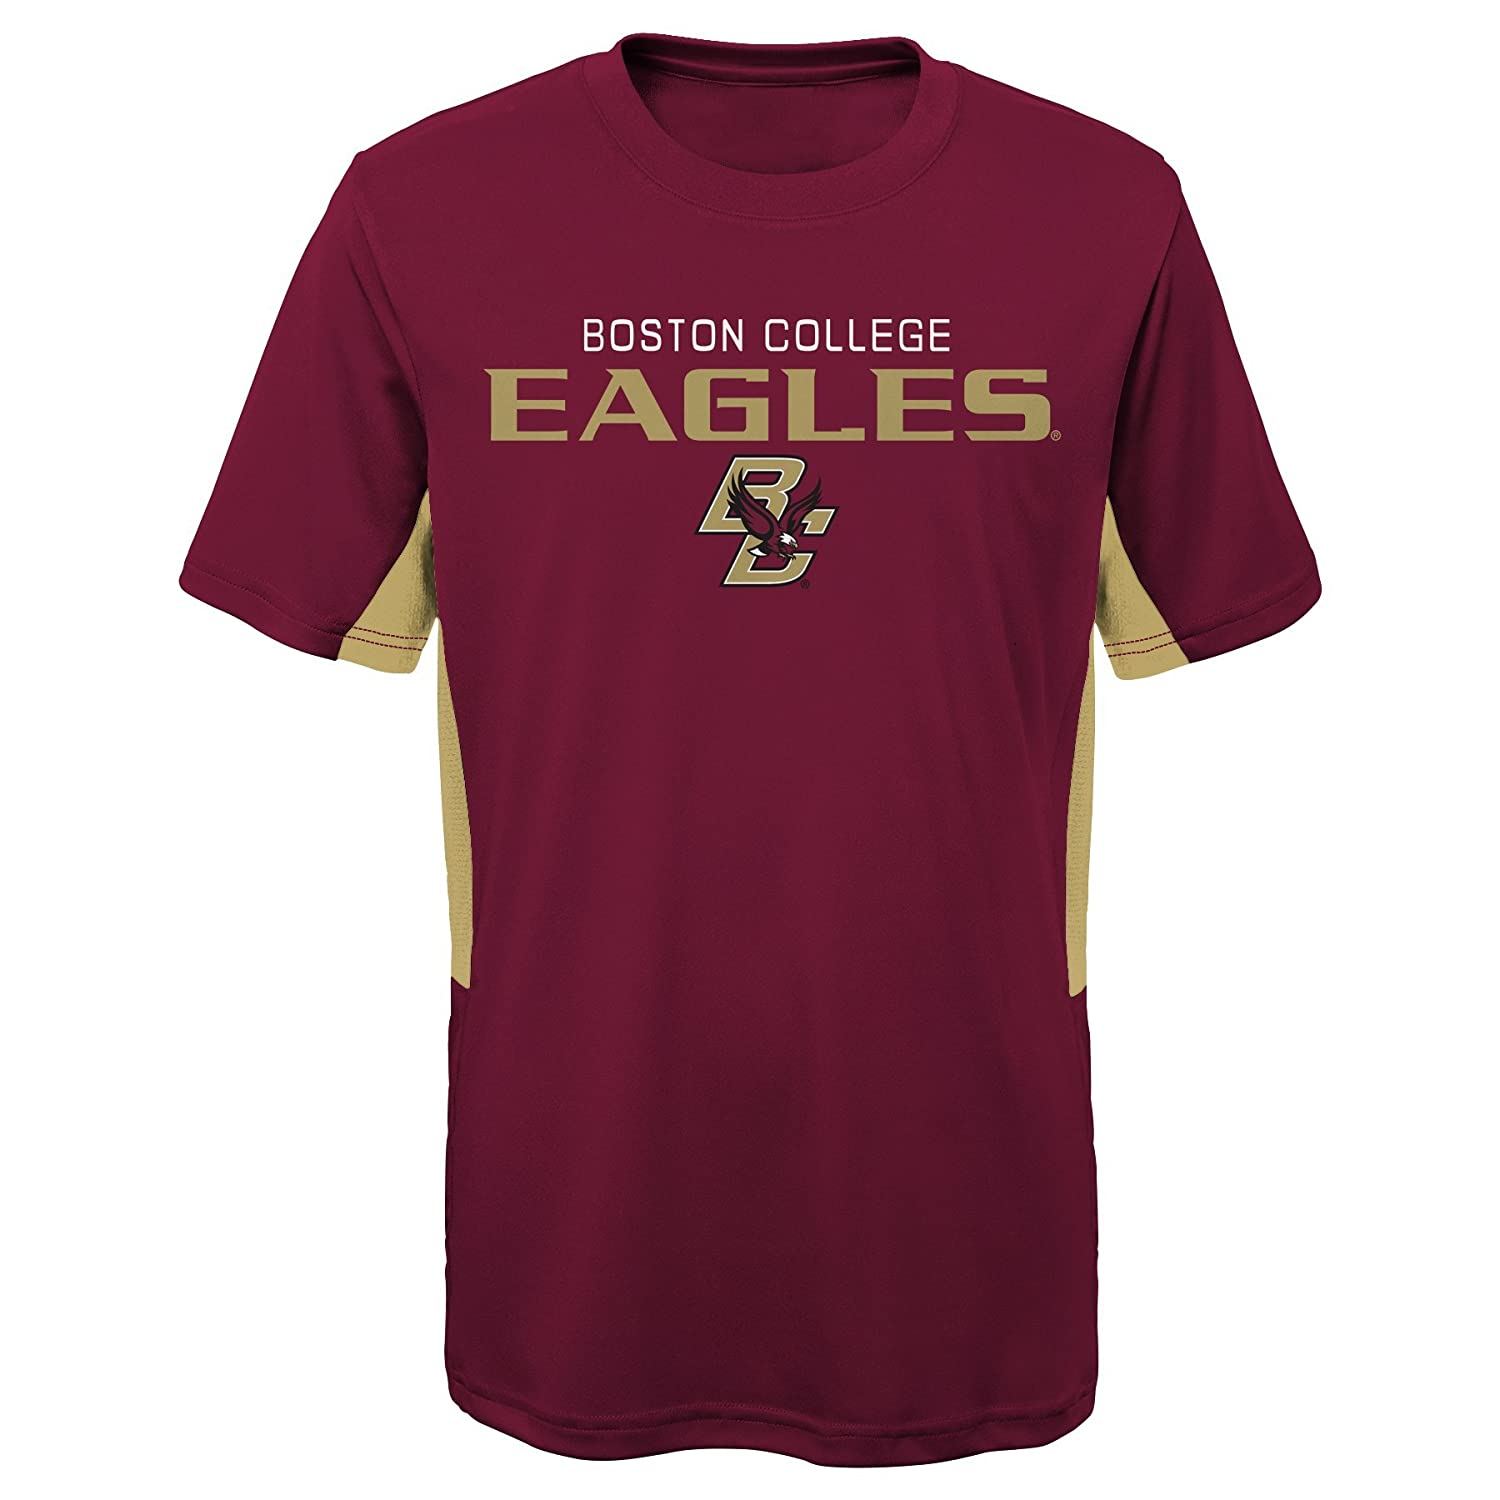 Youth Large NCAA by Outerstuff NCAA Boston College Eagles Youth Boys Mainframe: Short Sleeve Performance Top Burgundy 14-16